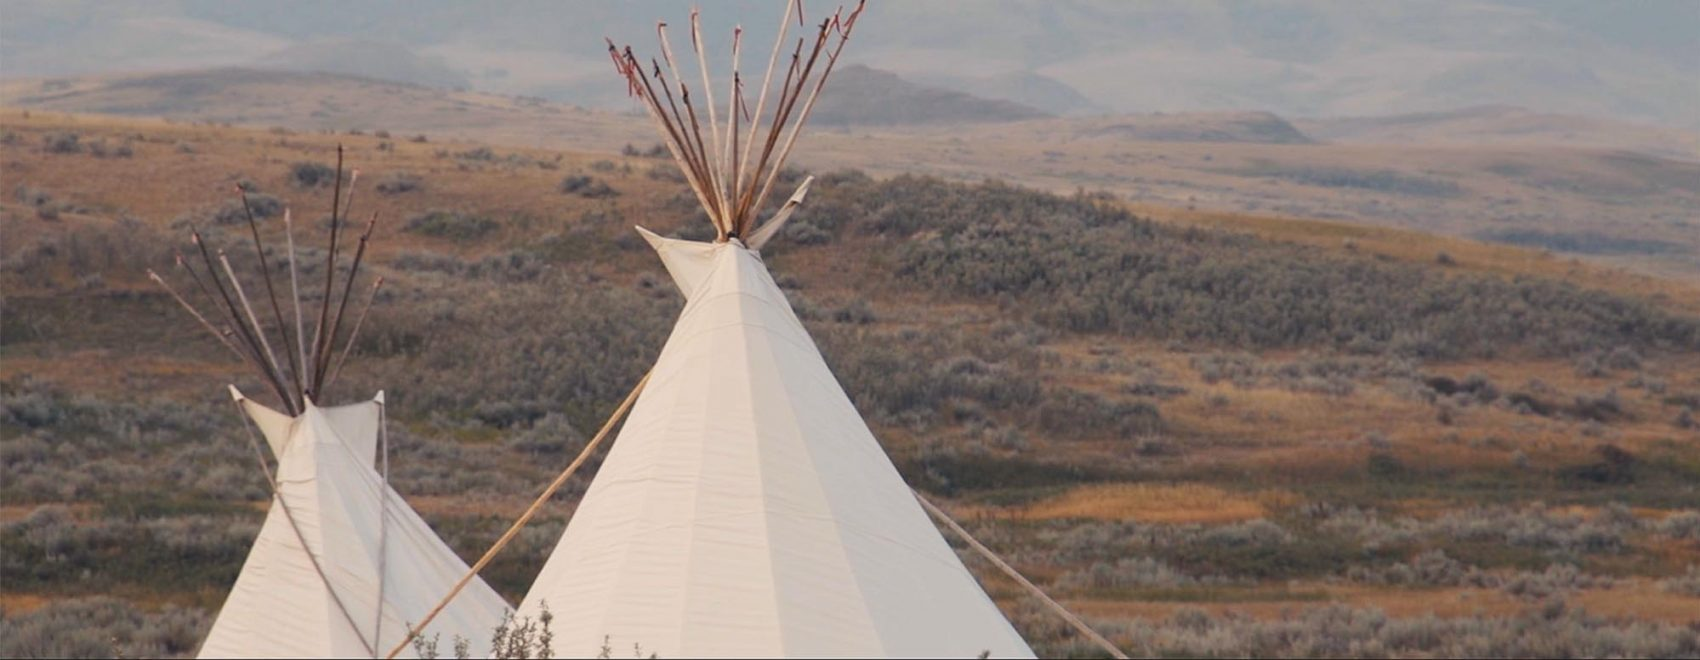 The Teepees at Grasslands